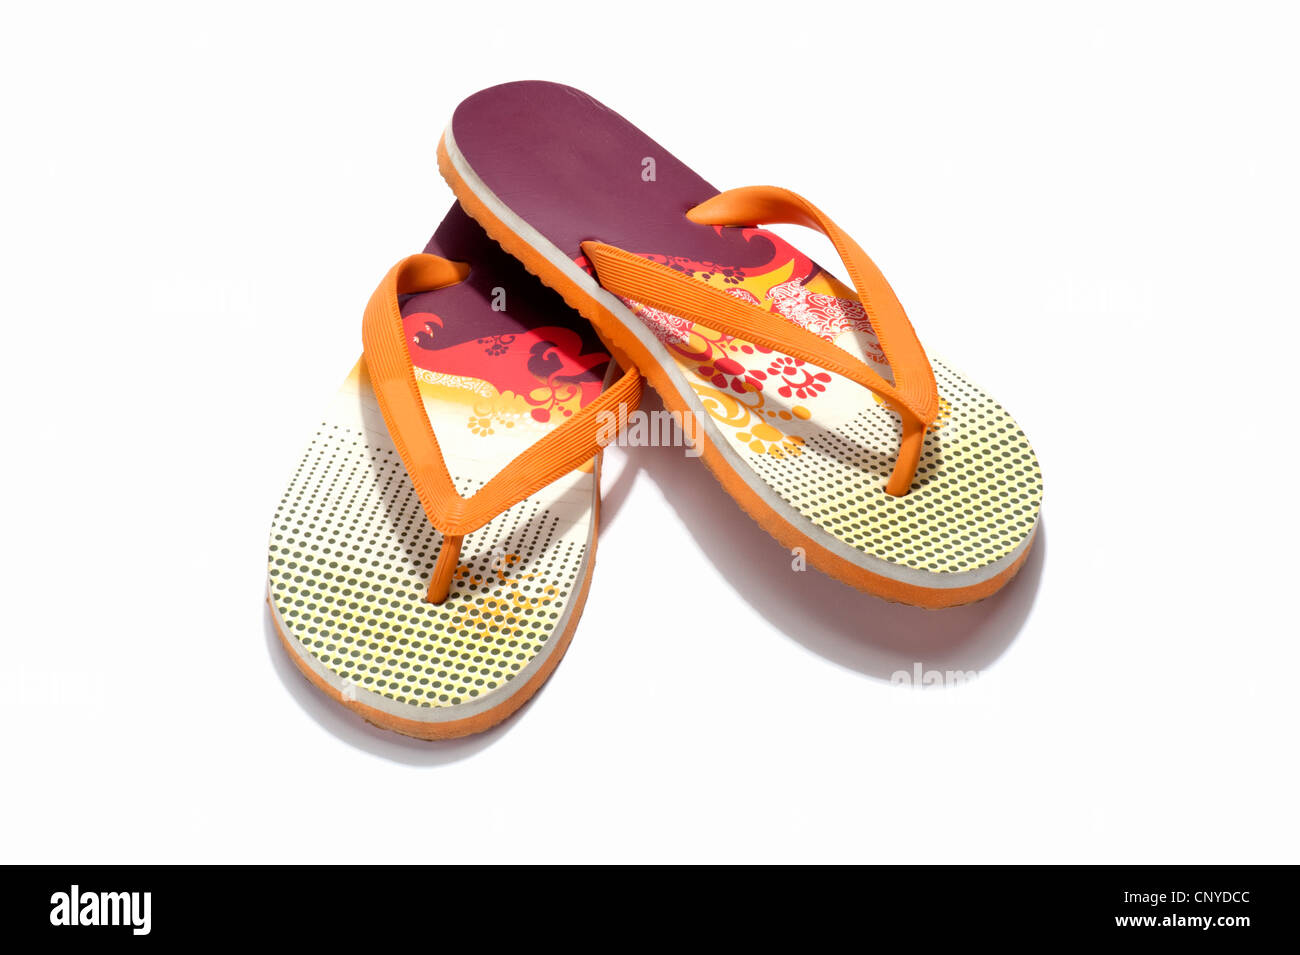 A pair of orange and red flip flops - Stock Image